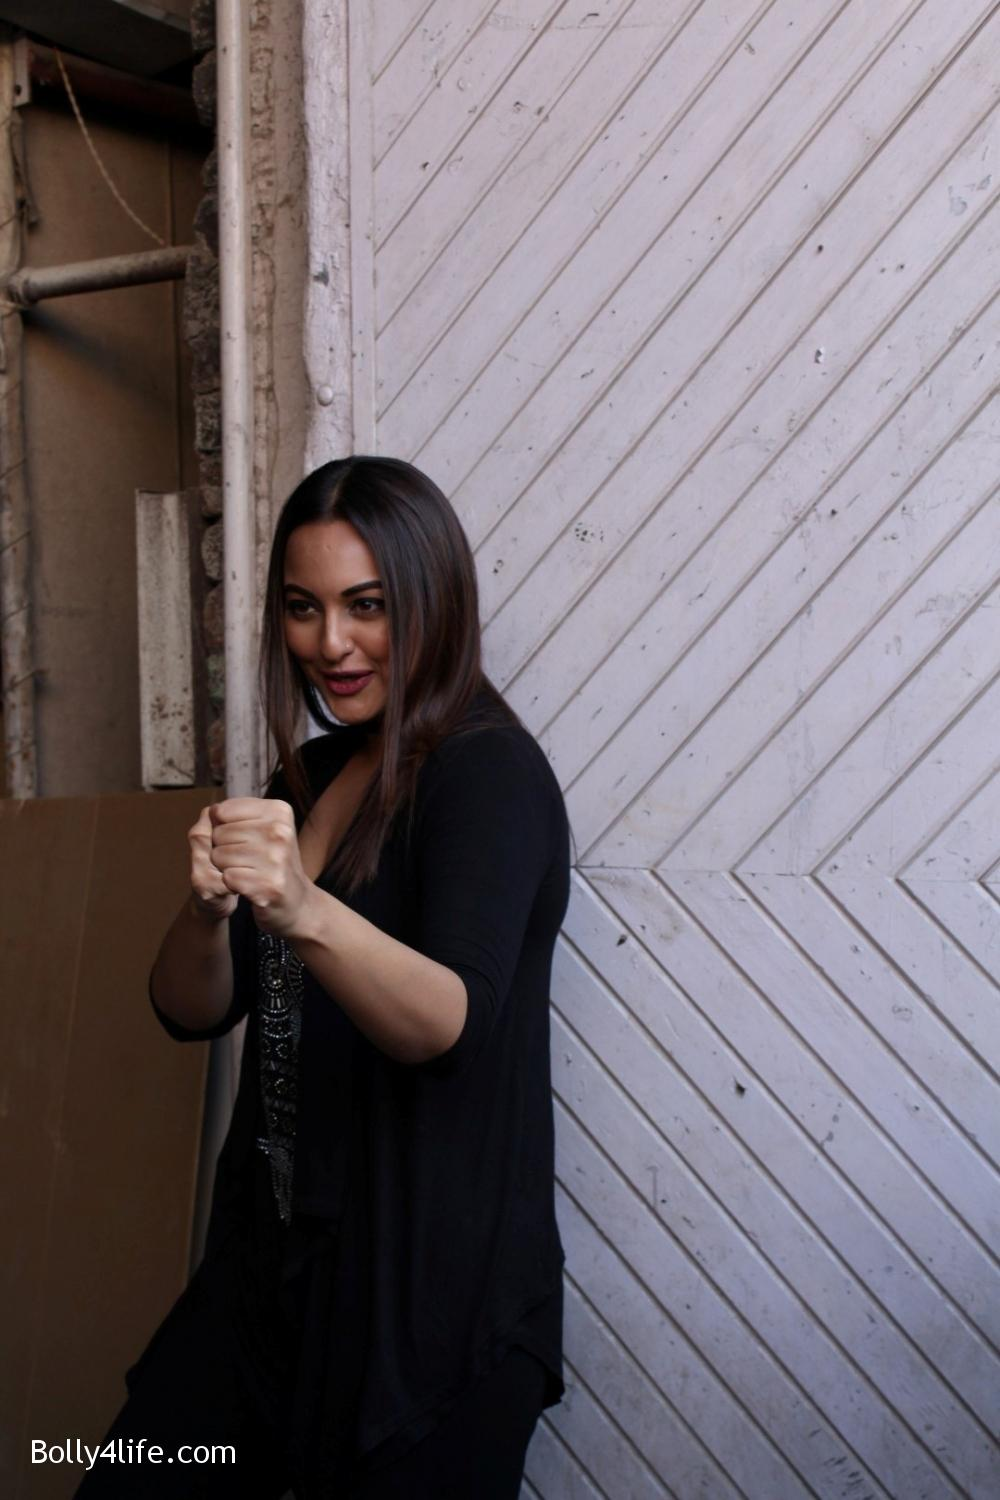 John-Abraham-and-Sonakshi-Sinha-iduring-the-press-conference-of-upcoming-film-Force-2-13.jpg